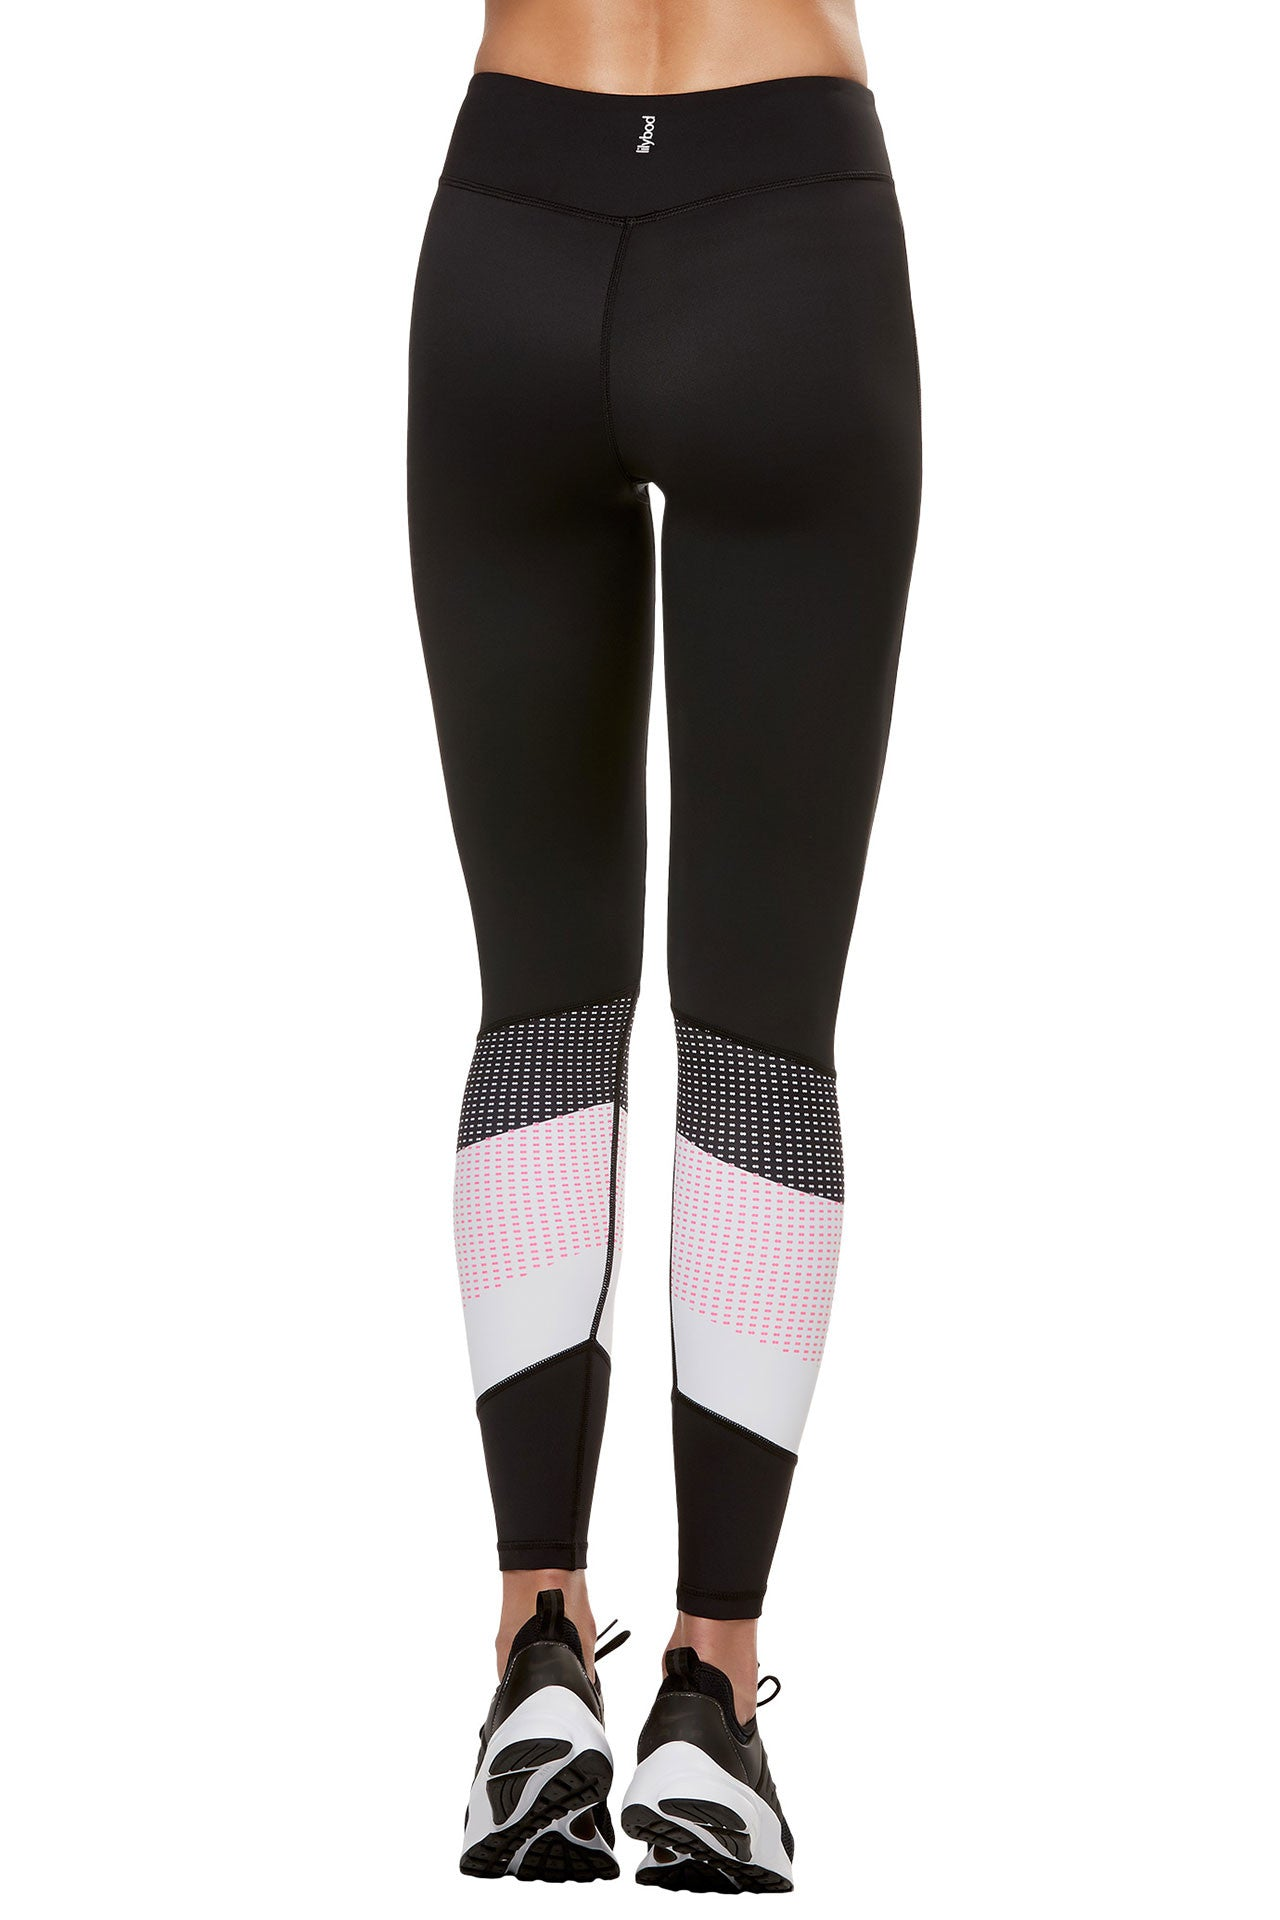 Lilybod Jade Legging - Super Burst - Sculptique